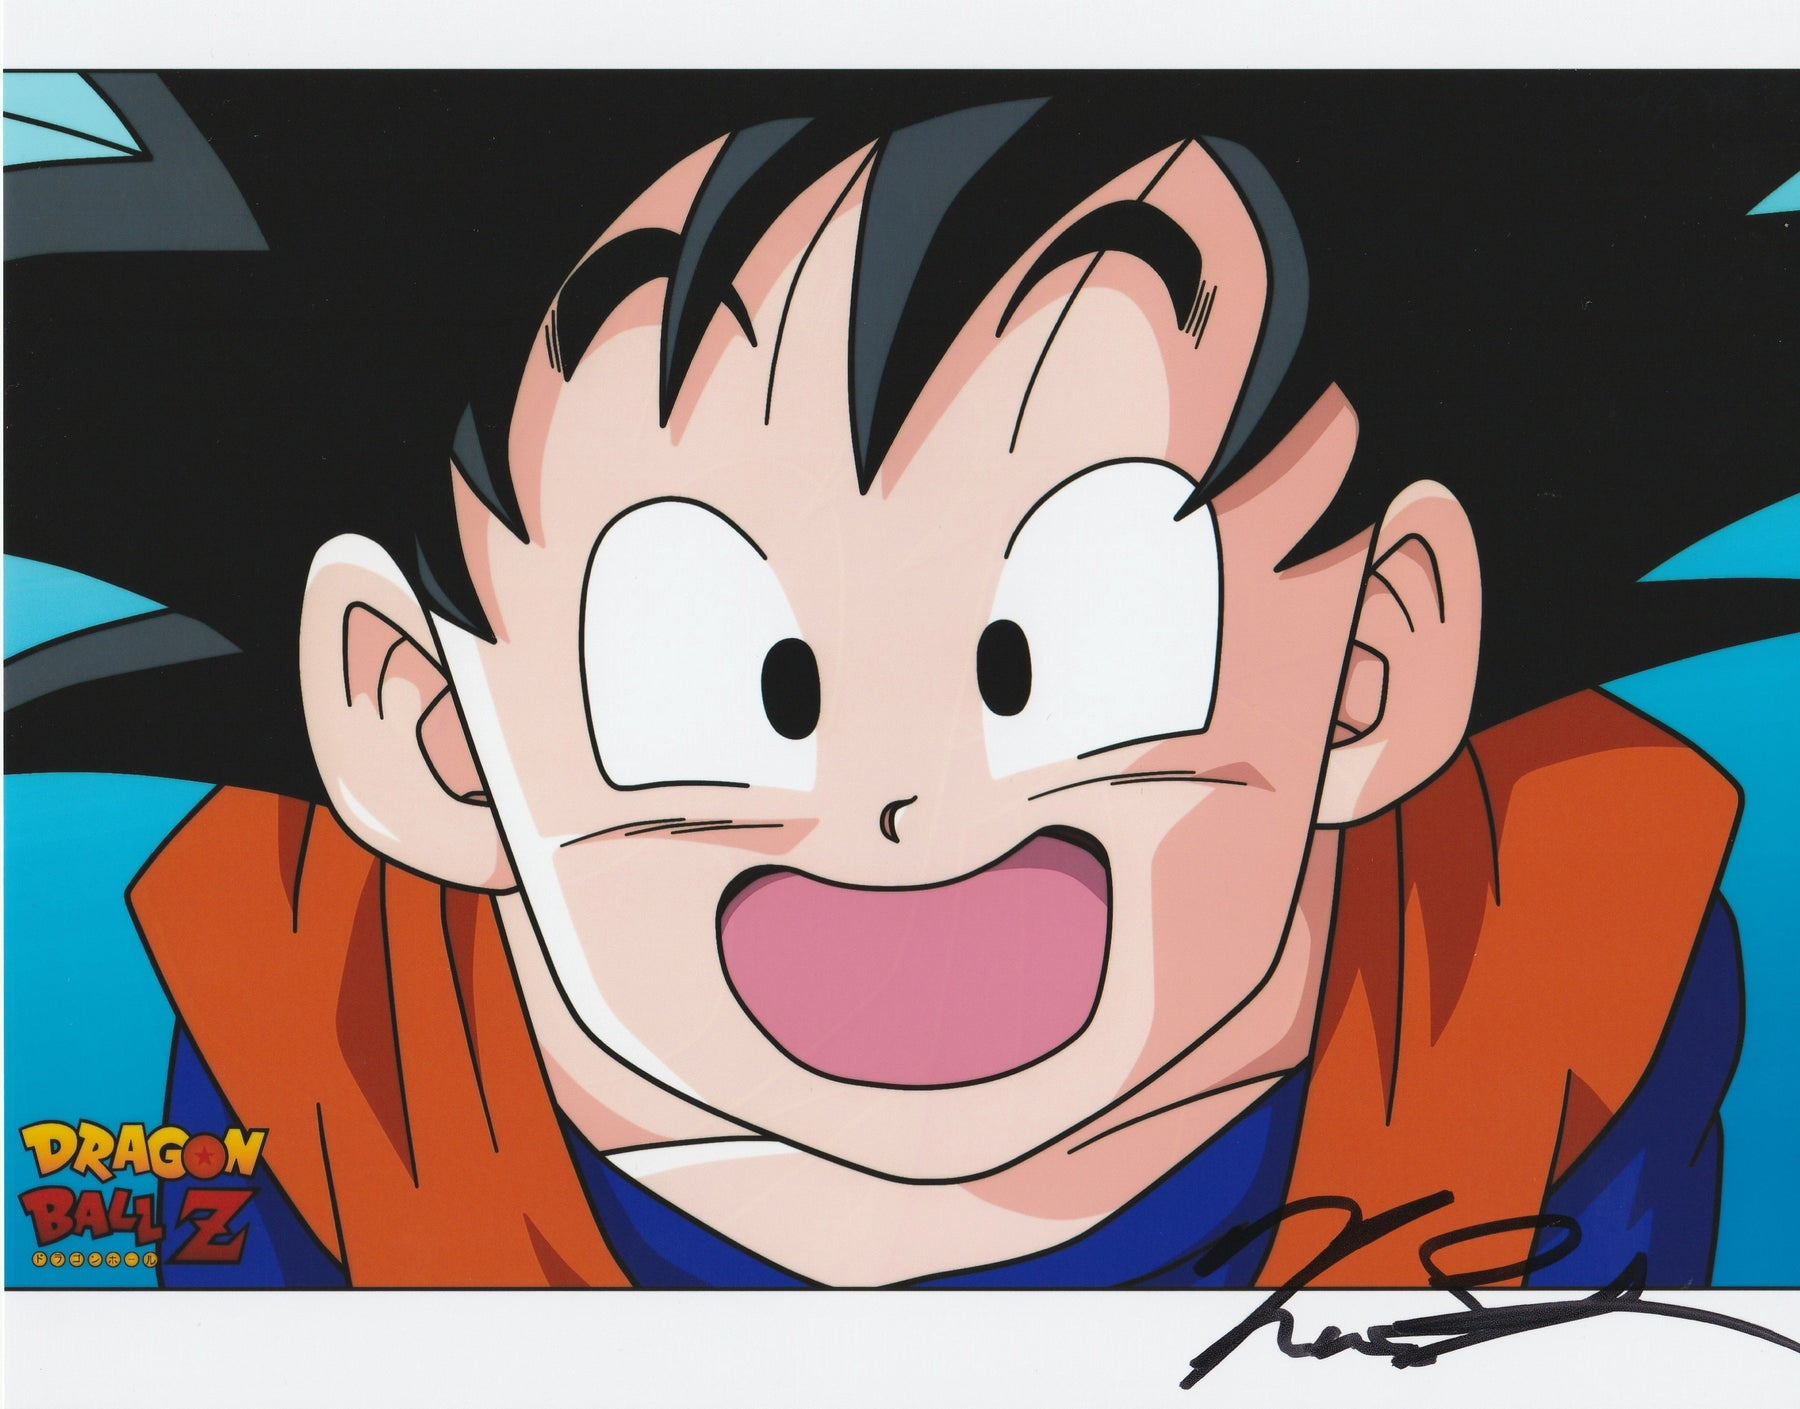 Kara Edwards Autograph Goten 8x10 Photo Dragon Ball Z Signed Zobie COA K1